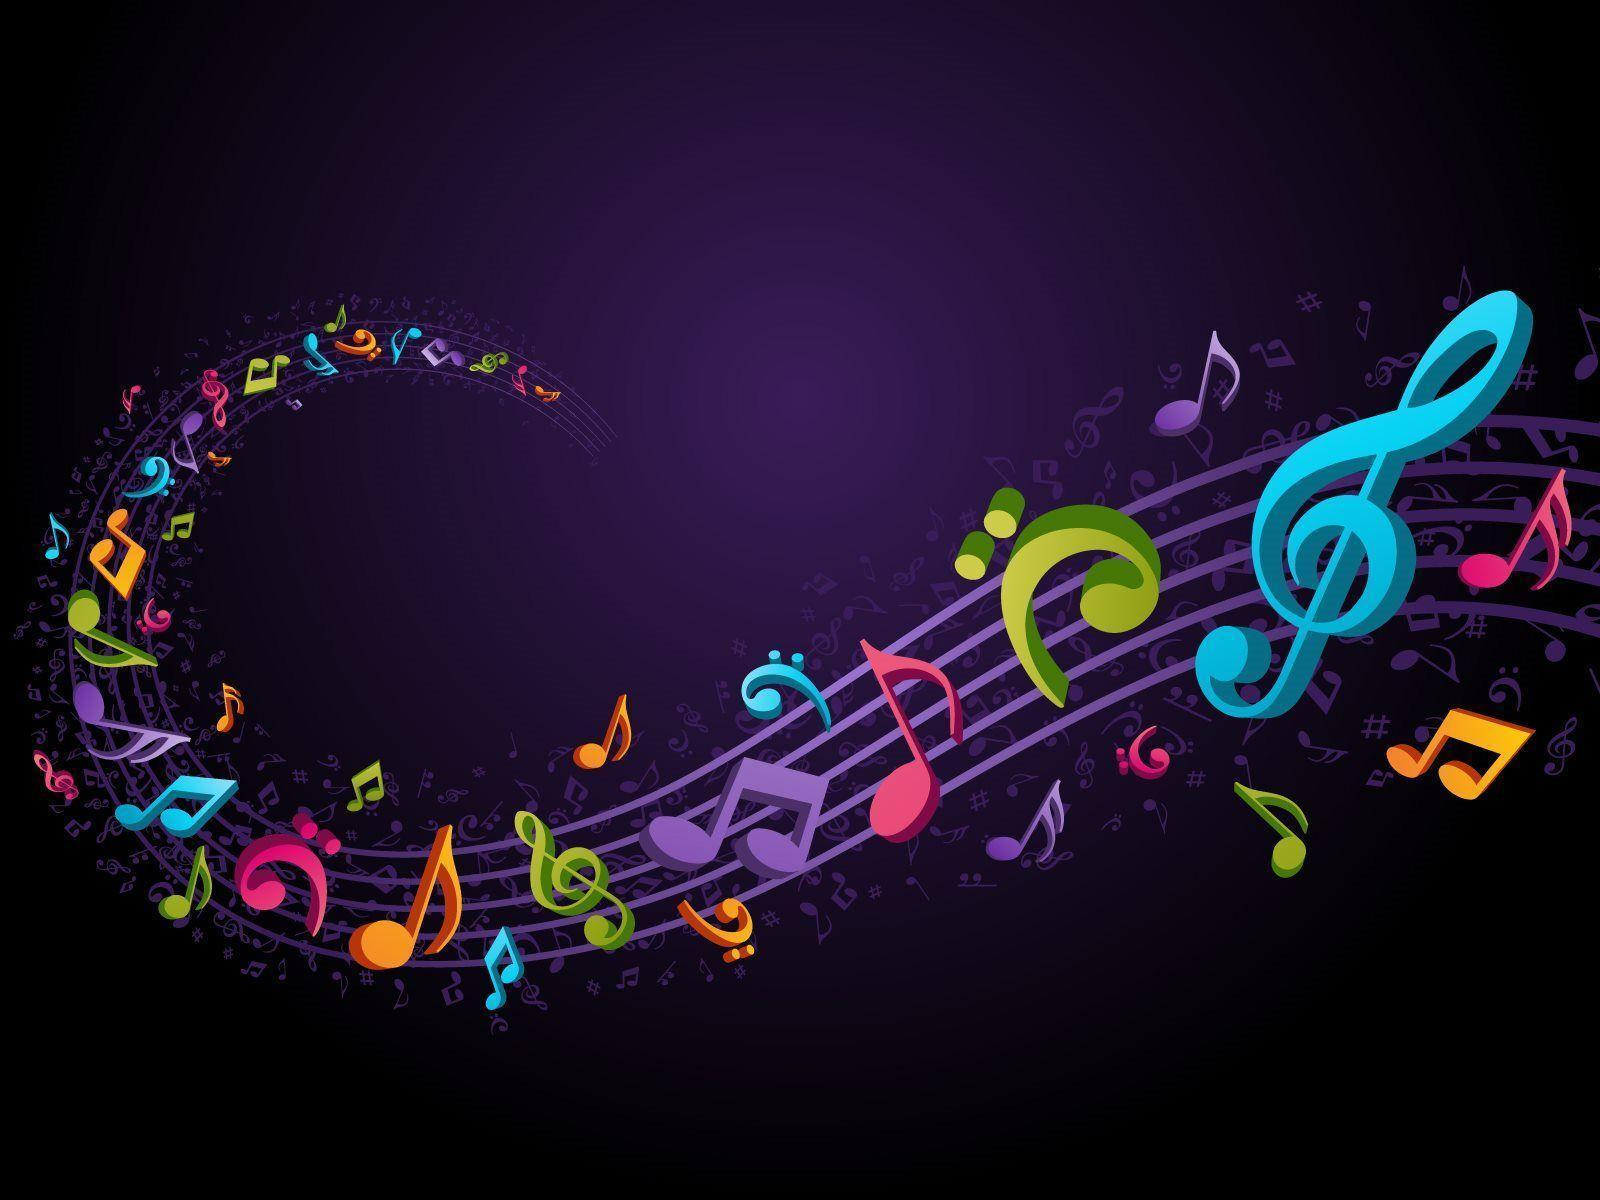 Music Notes Backgrounds - Wallpaper Cave